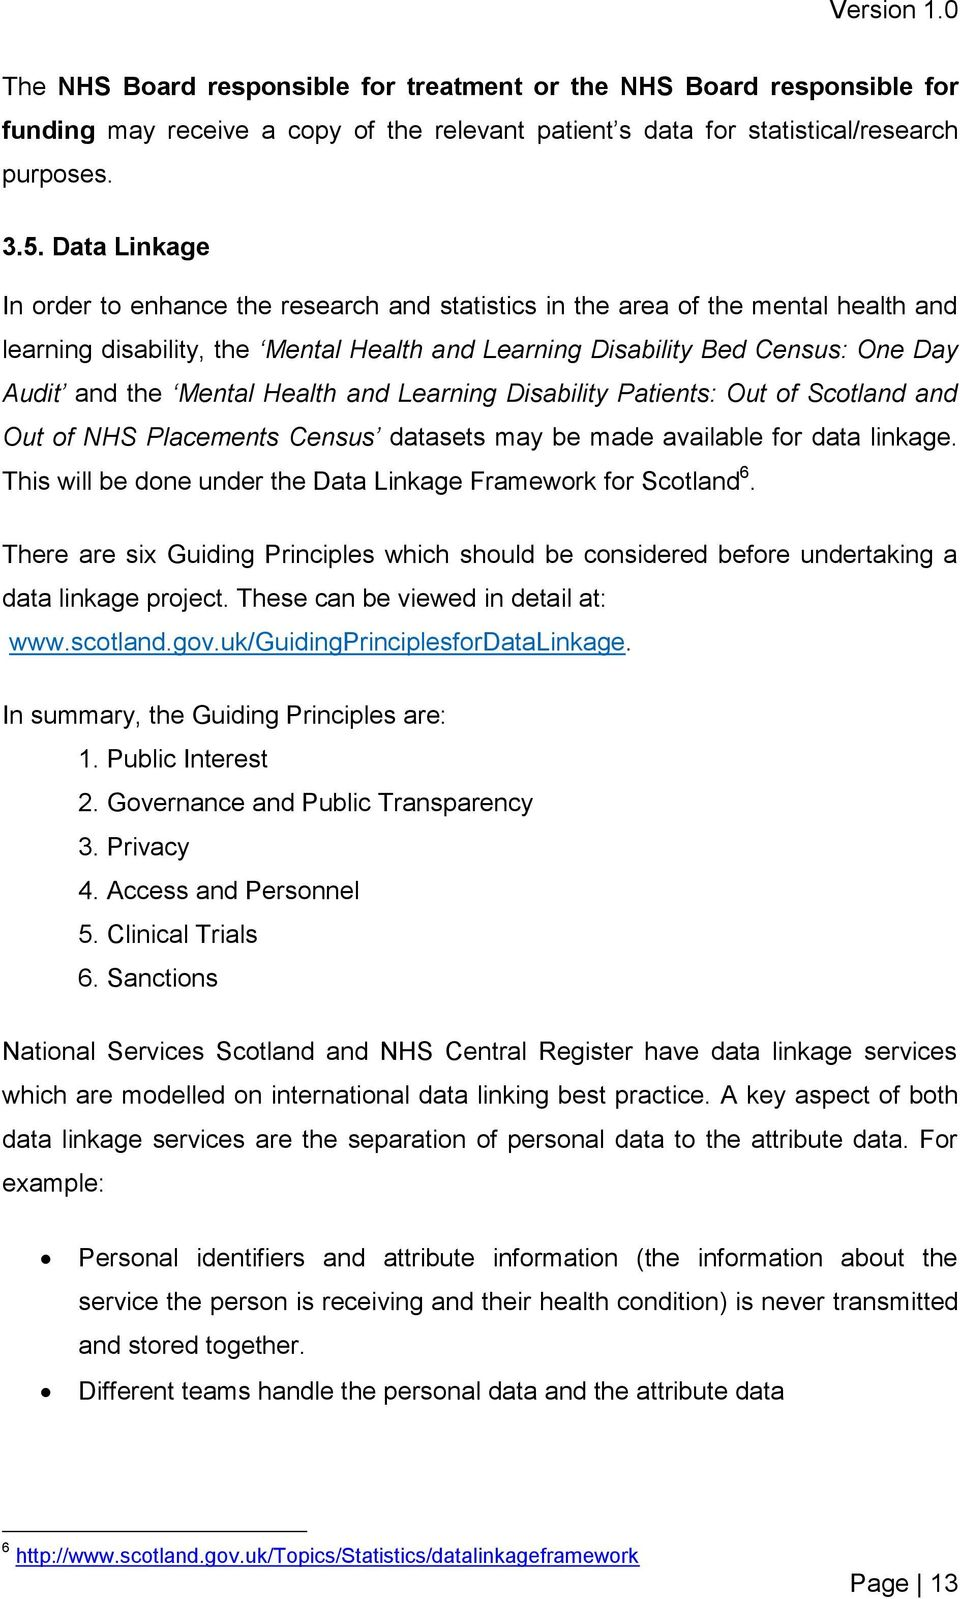 Mental Health and Learning Disability Patients: Out of Scotland and Out of NHS Placements Census datasets may be made available for data linkage.